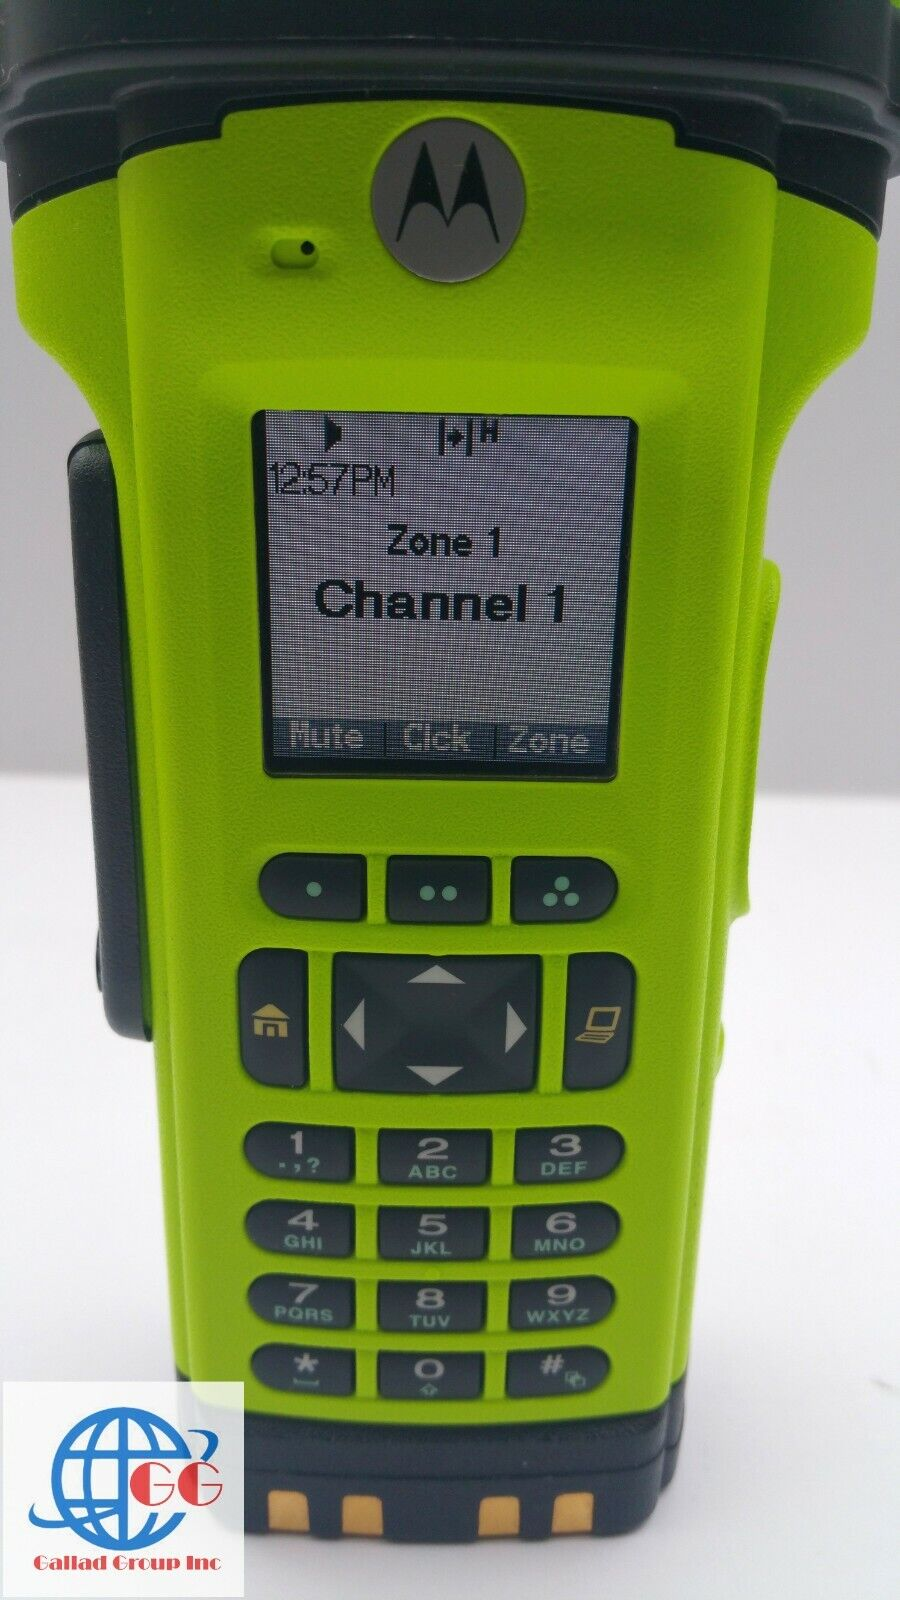 TESTED MOTOROLA APX APX8000XE P25 TDMA RADIO FPP VHF 7-800 UHF DIGITAL FPP AES. Available Now for 4099.99